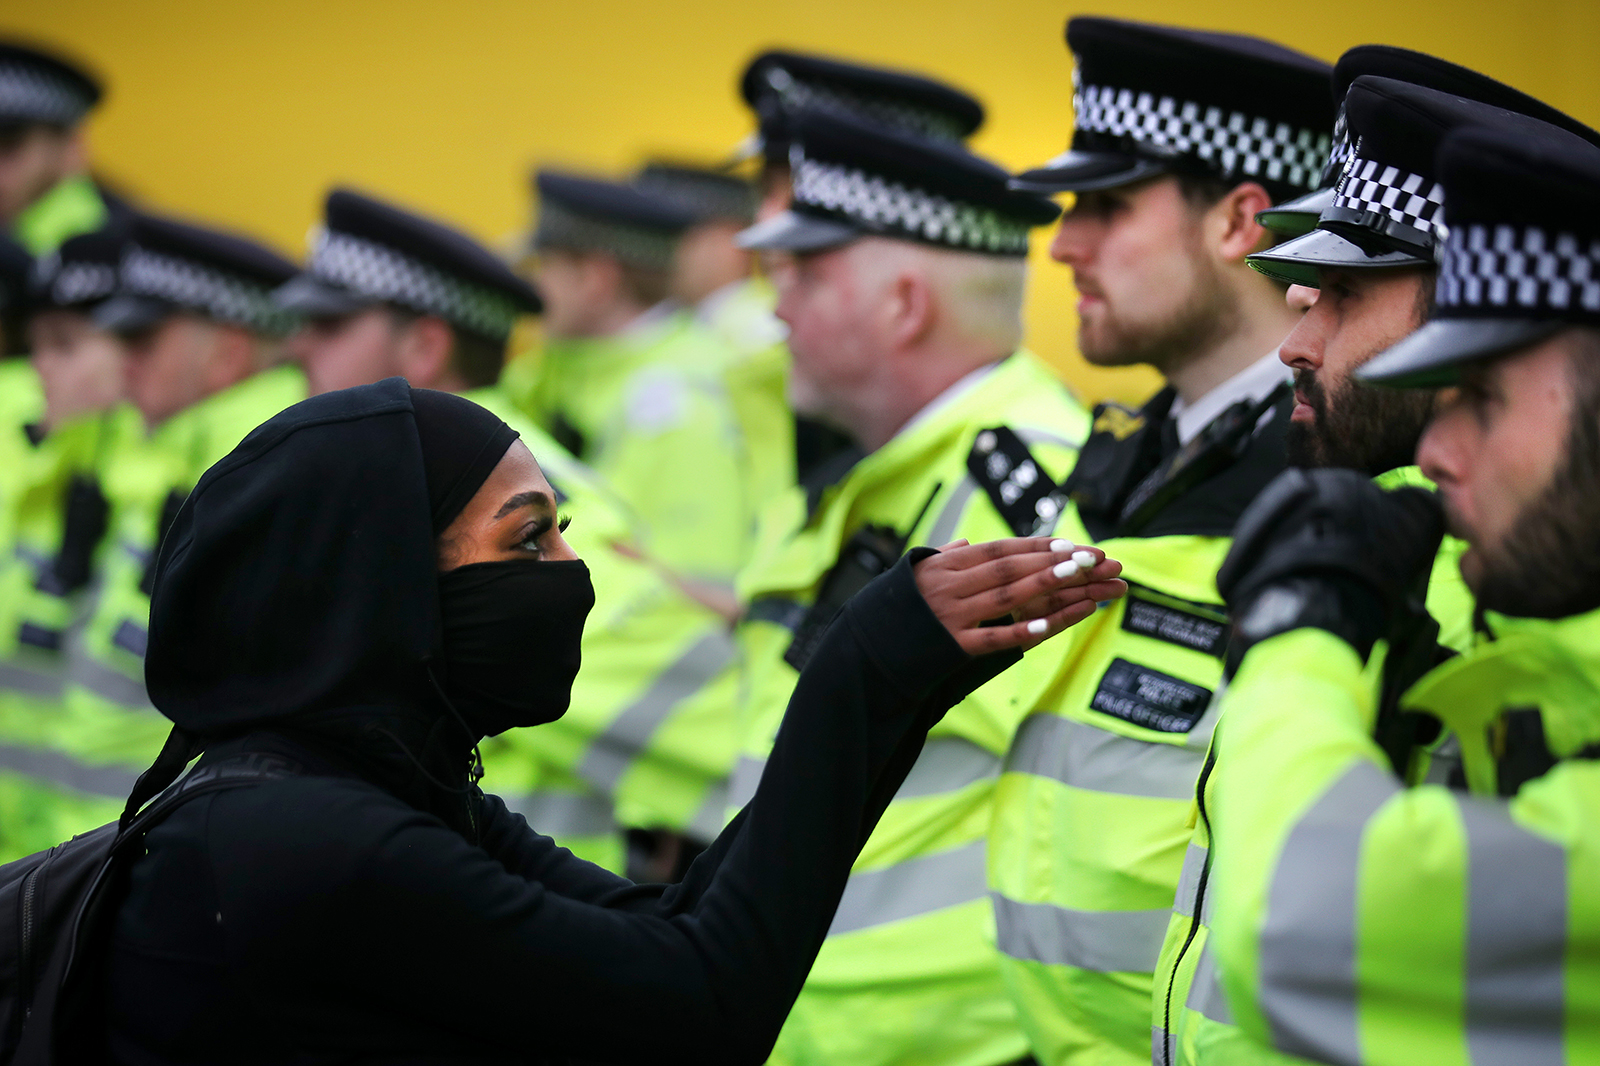 A protester confronts a police officer during a Black Lives Matter protest on June 6, in London.